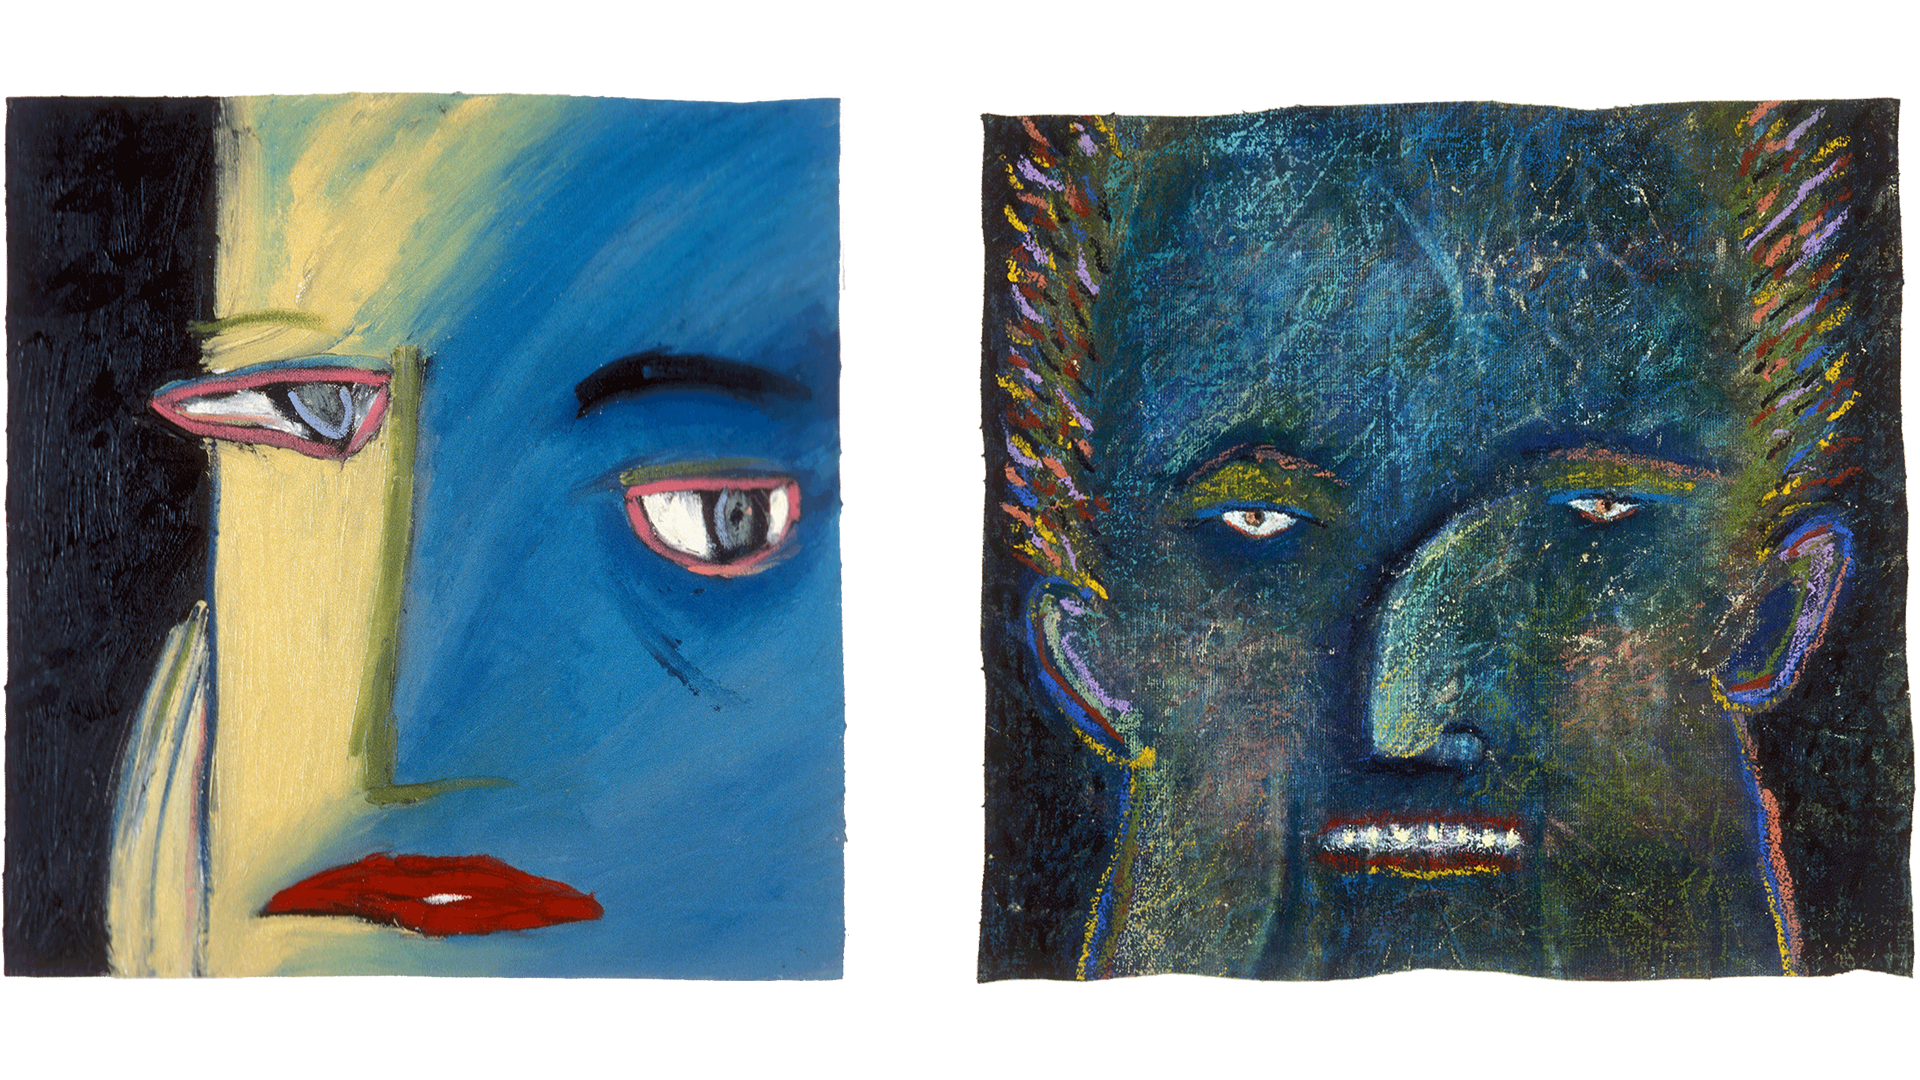 virginiahalstead.com/Paintings/Pair/Two-sides-of-the-story-Hers-His.png